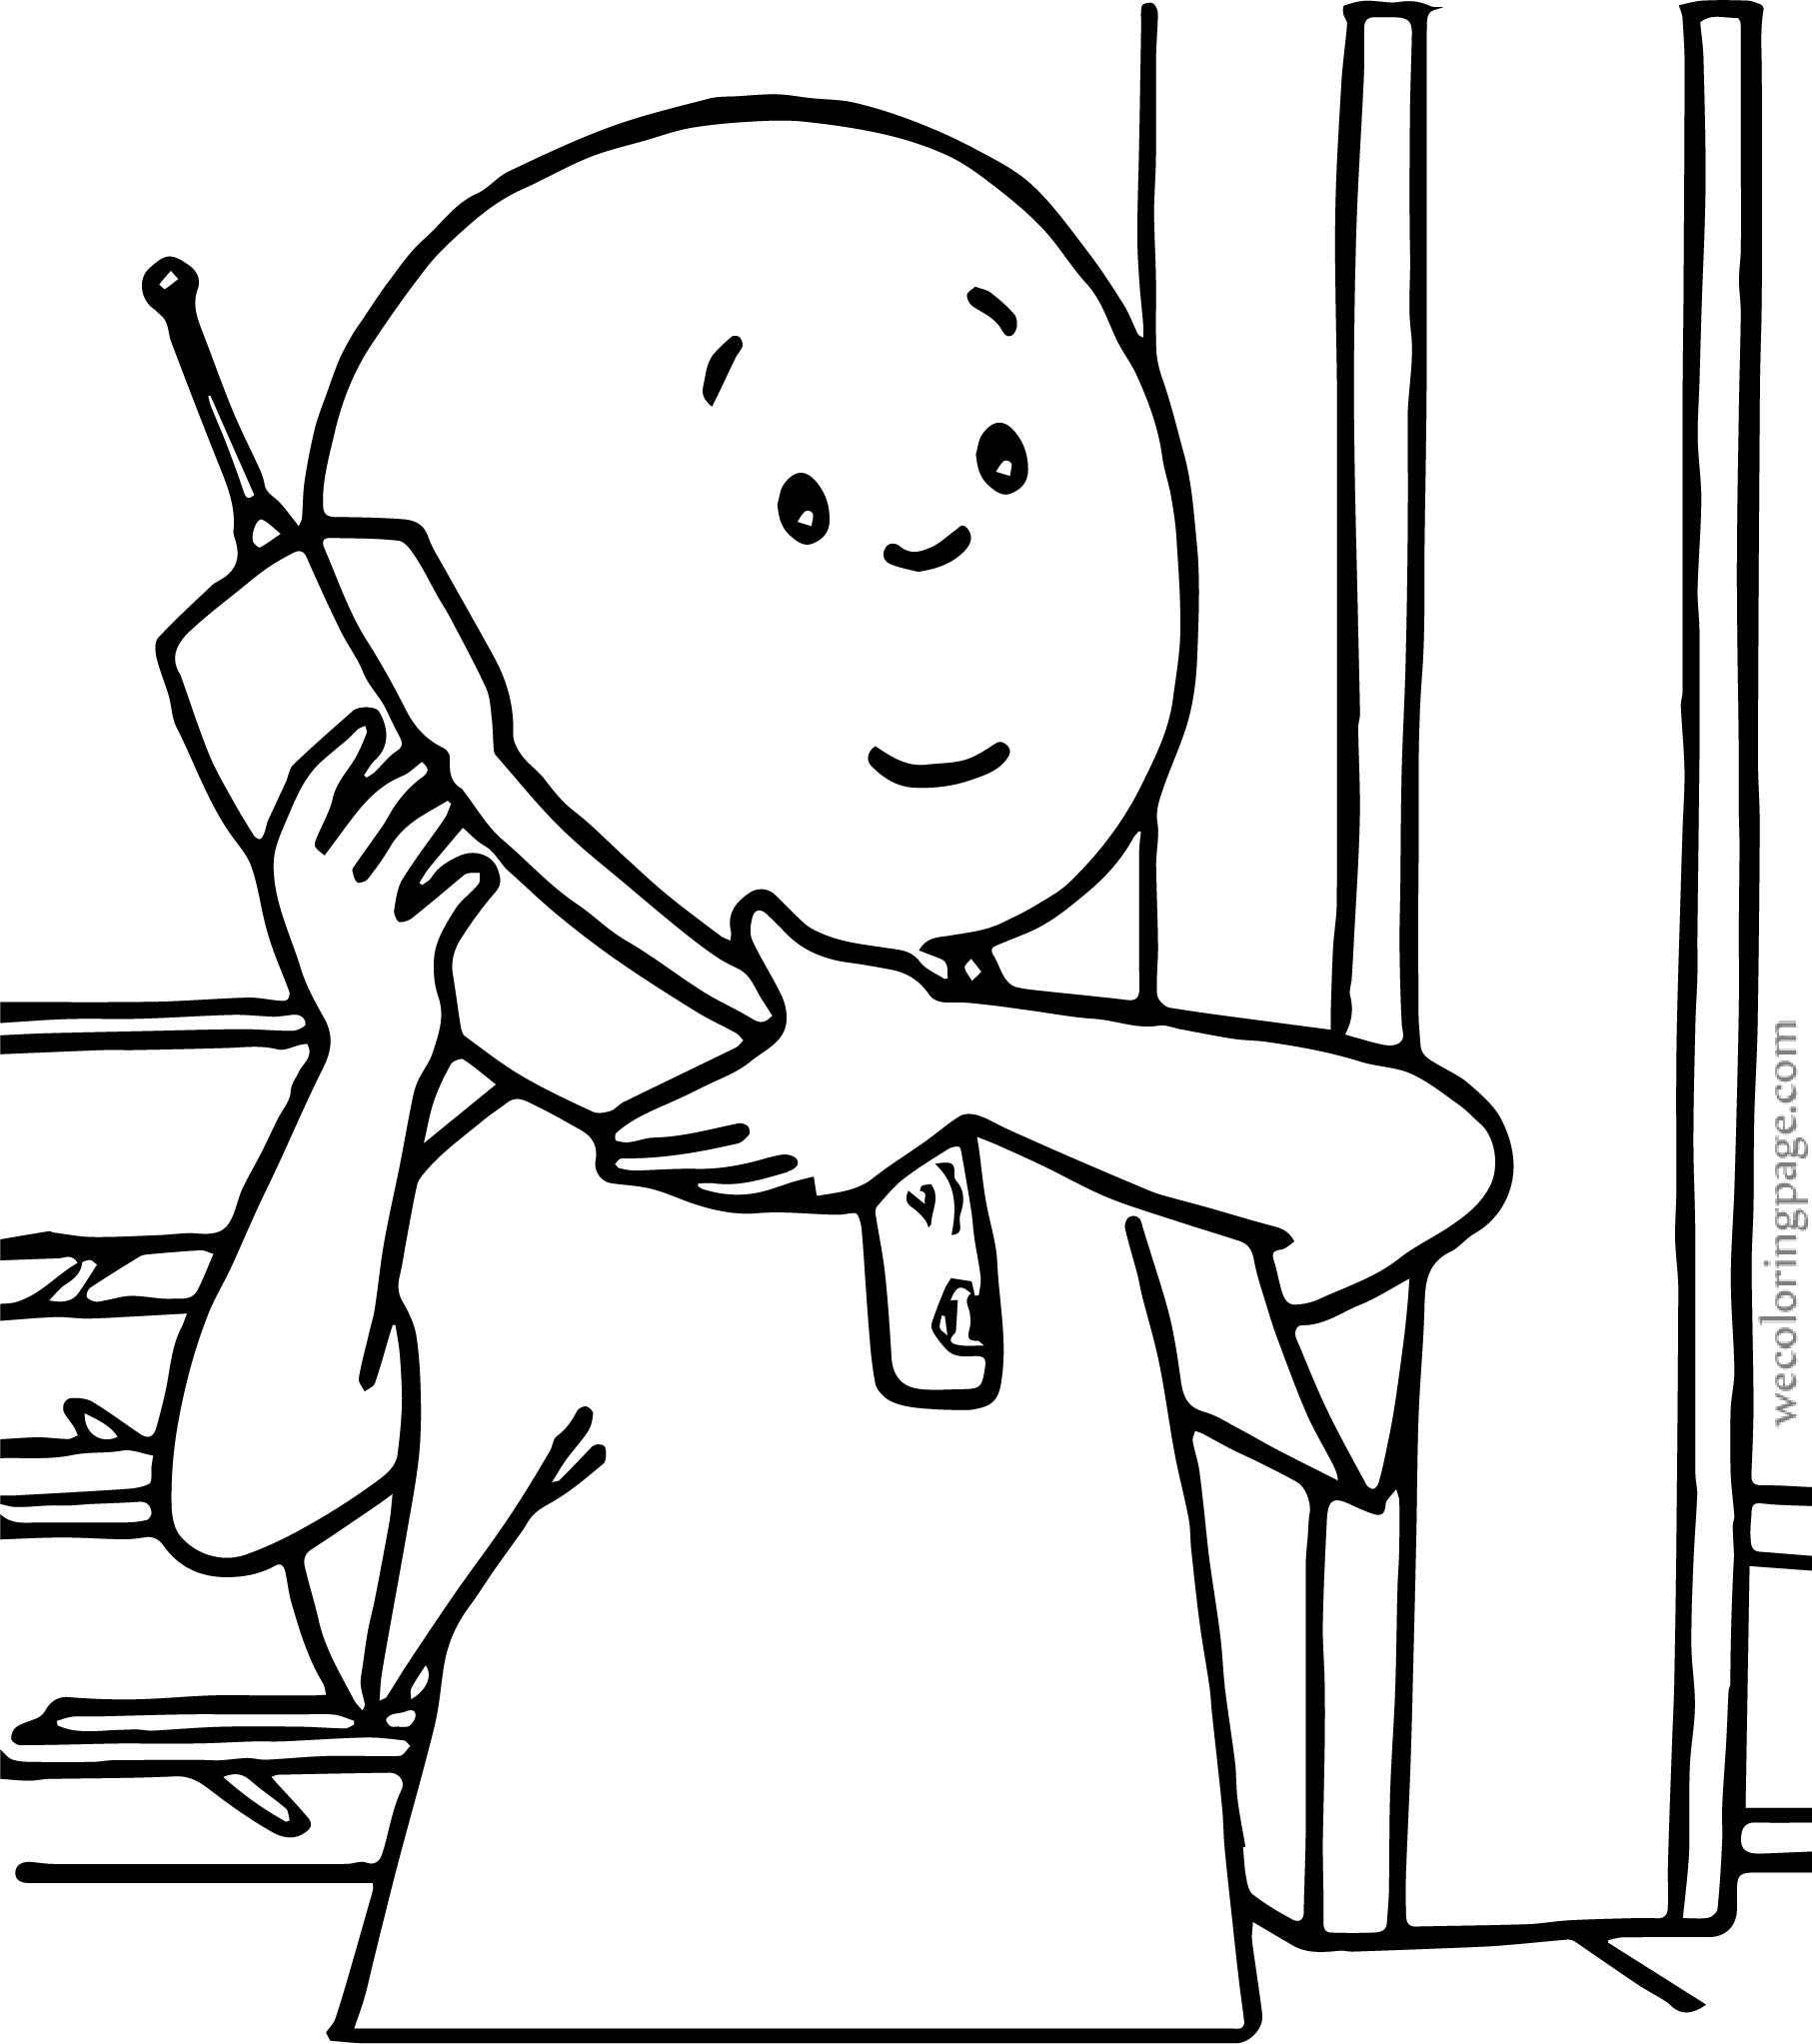 Caillou Talking Phone Coloring Page